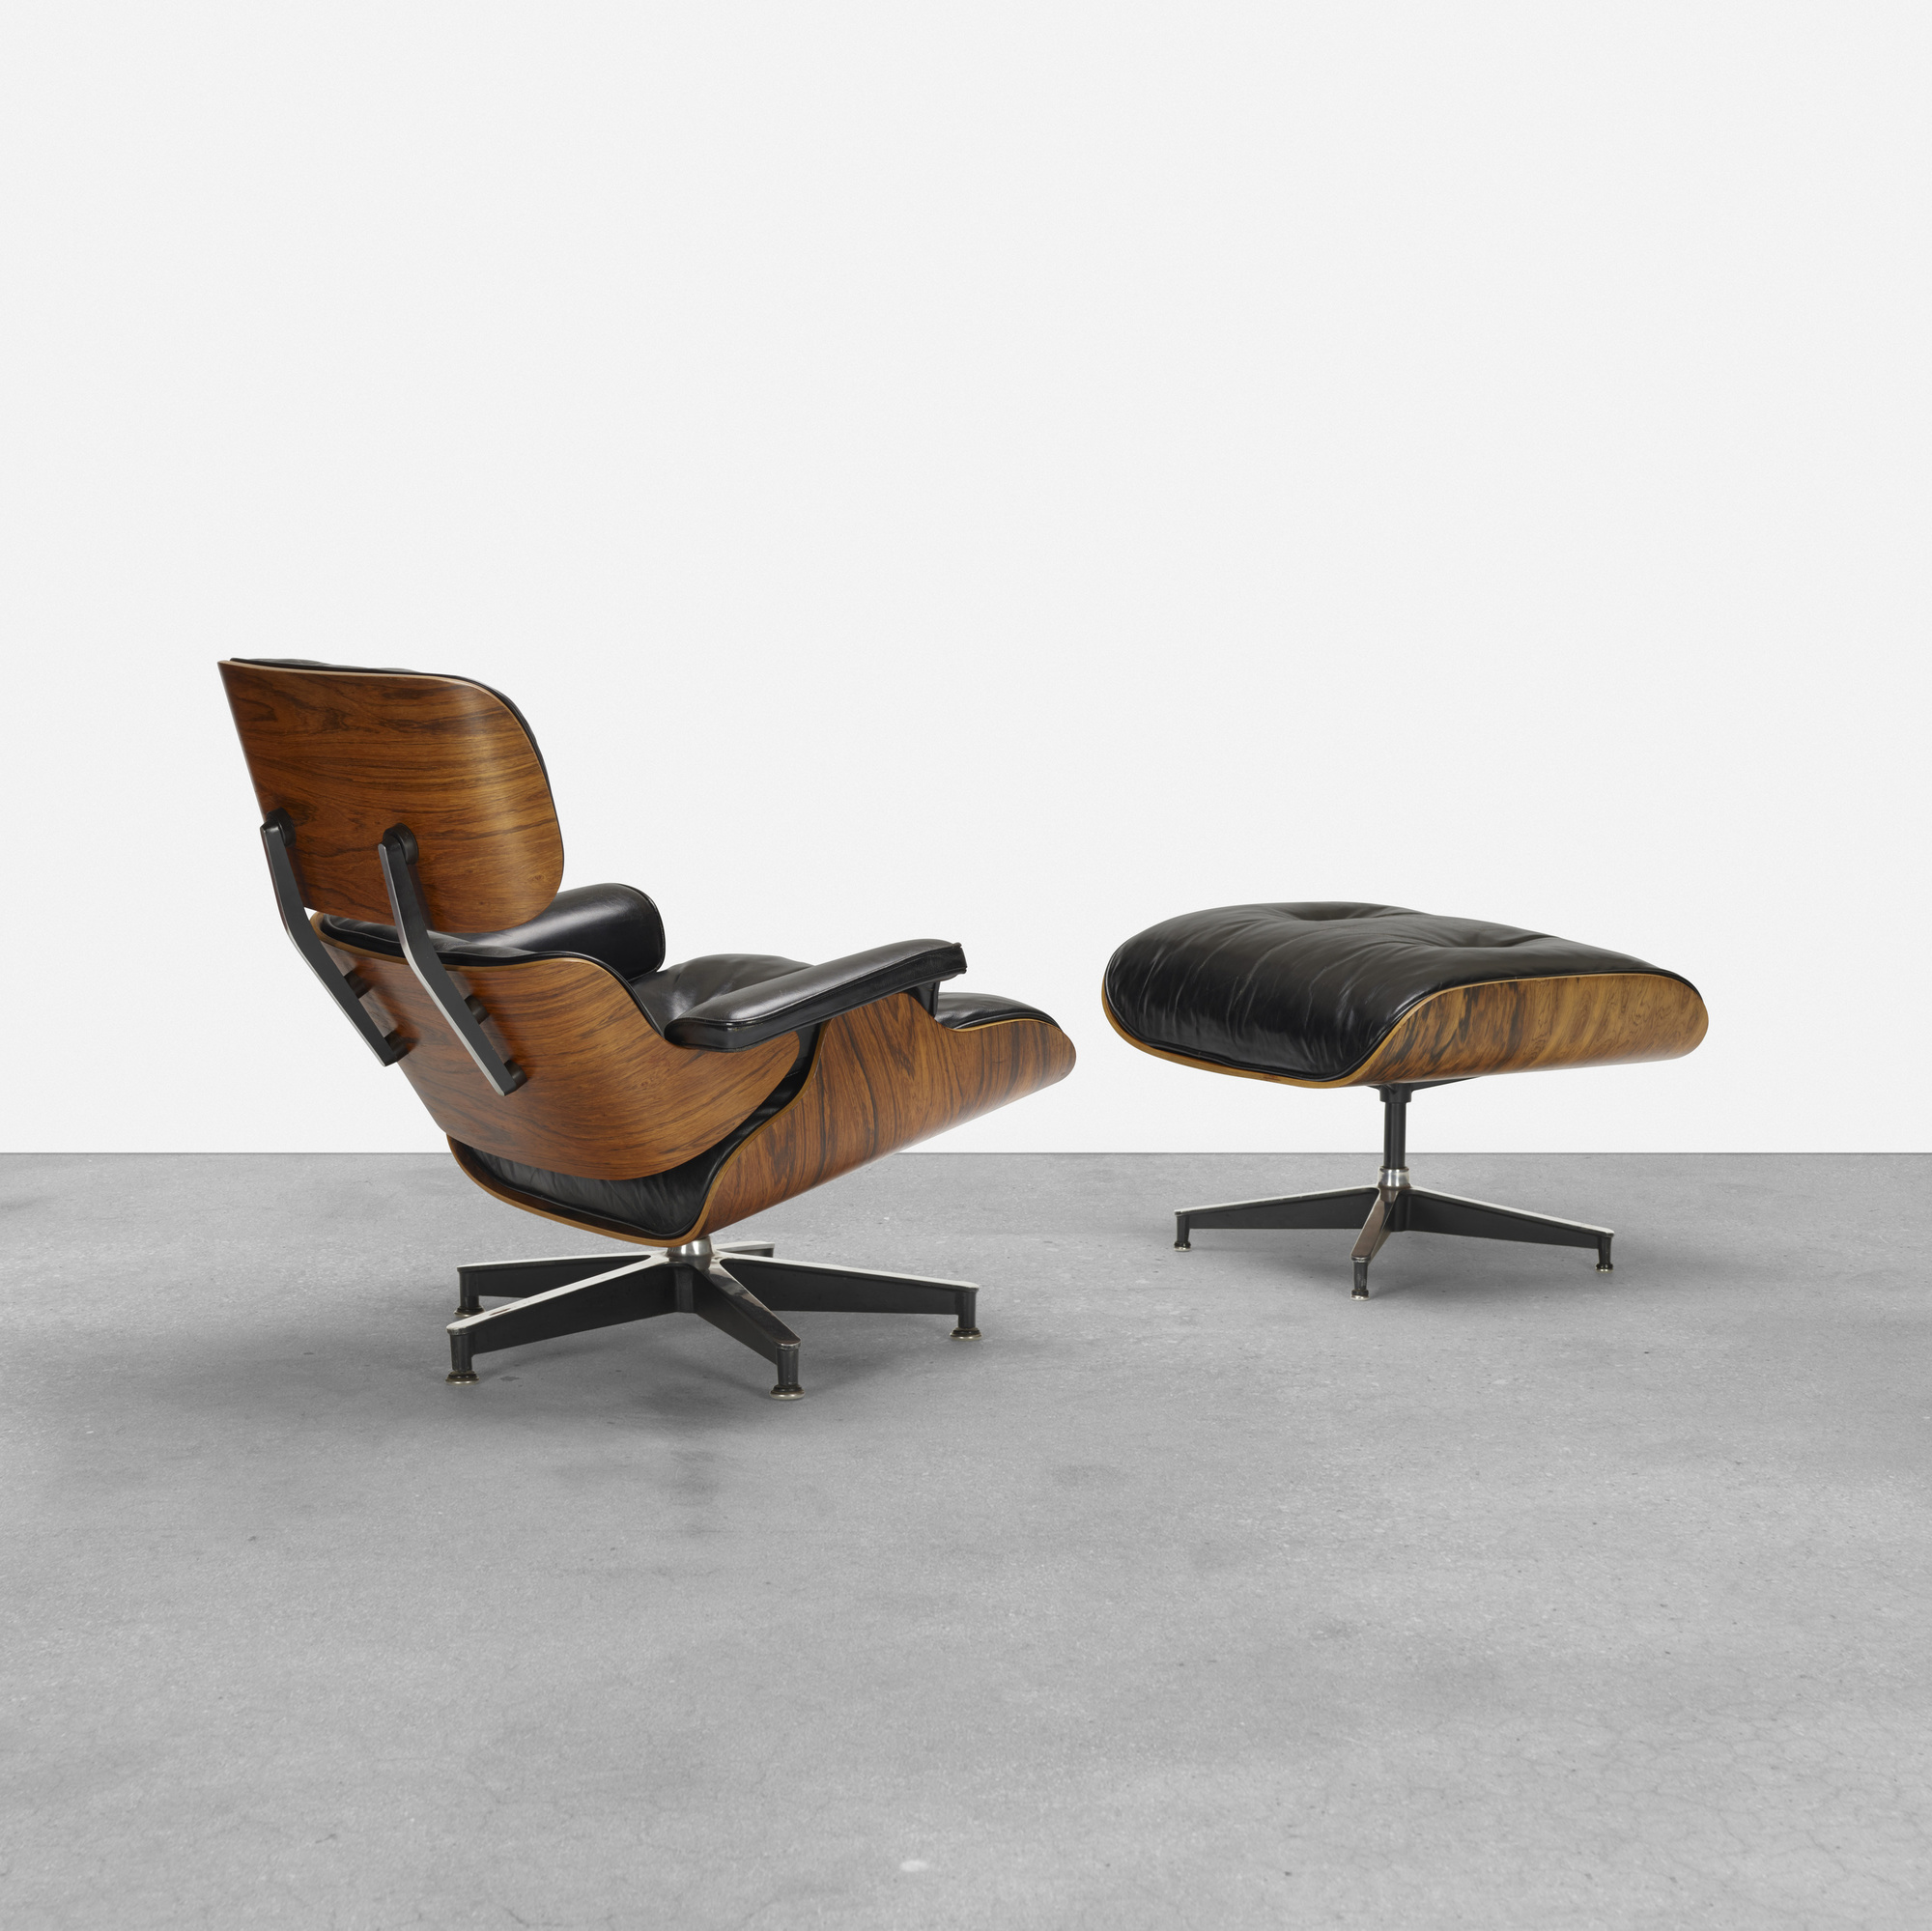 339 charles and ray eames 670 lounge chair and 671 ottoman. Black Bedroom Furniture Sets. Home Design Ideas